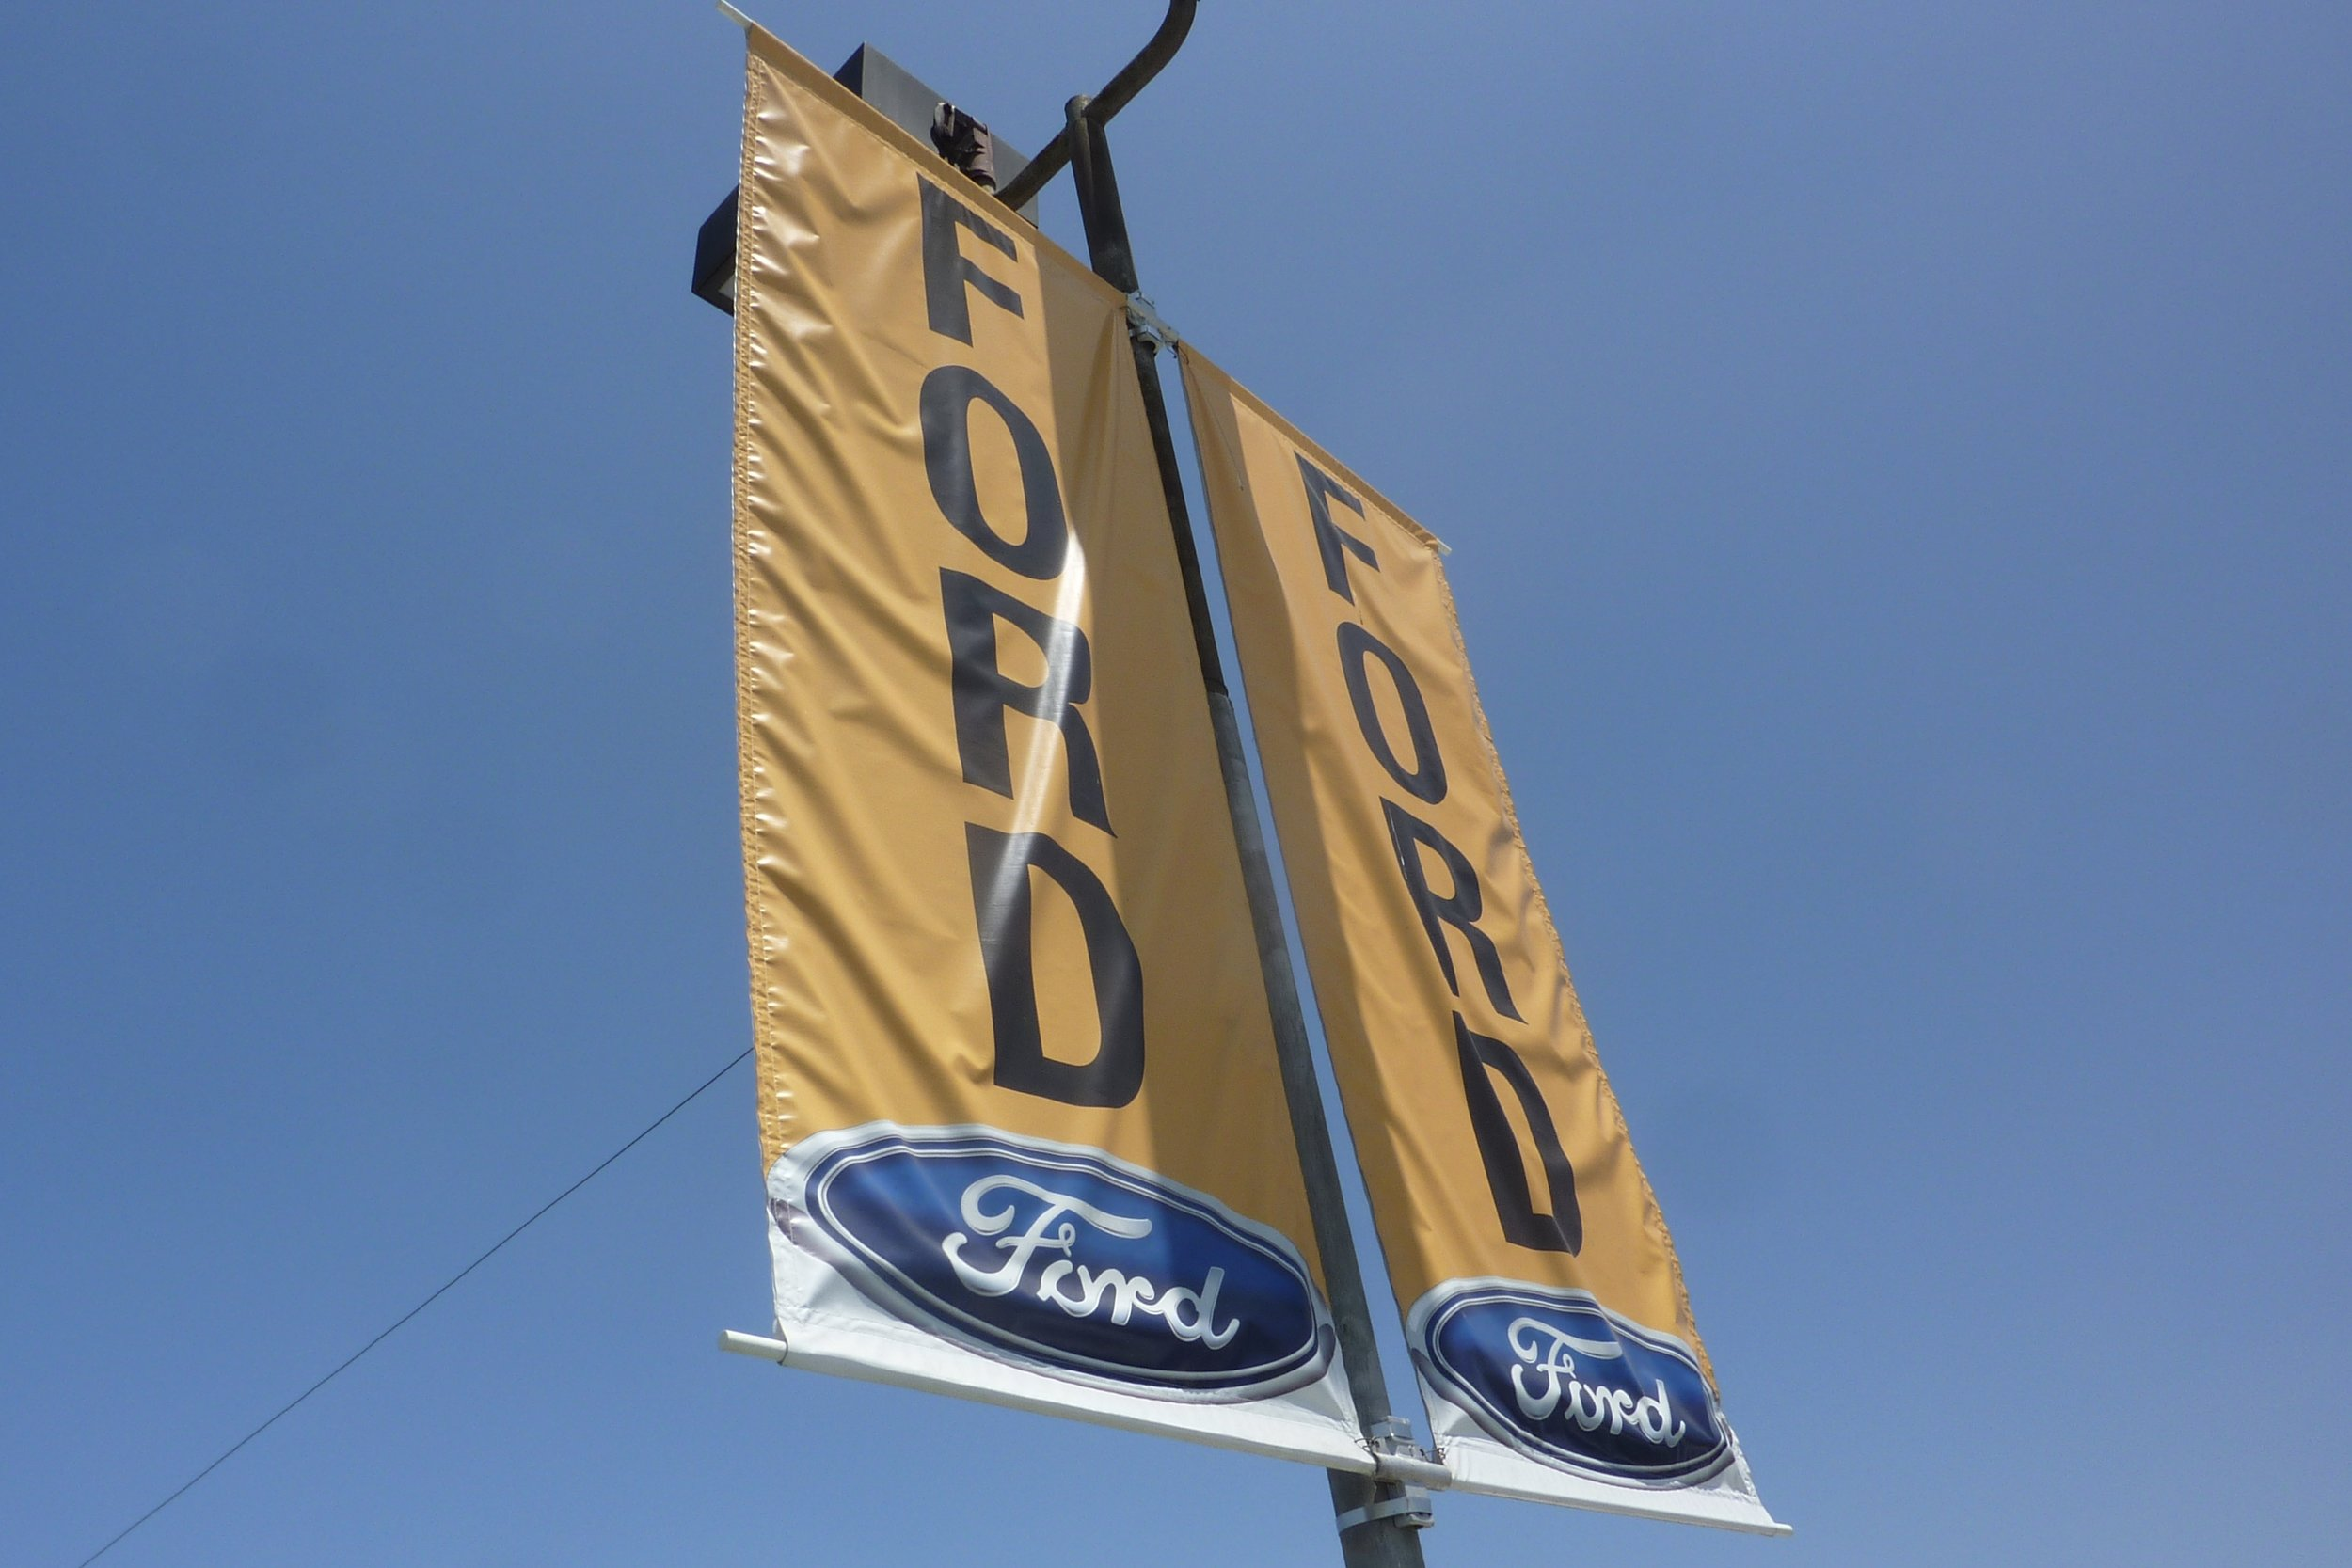 Pole banners - banners with pockets sewn in top and bottom, installed onto brackets attached to a parking lot light pole (typically) - are a great option to use that parking lot real estate you already have.